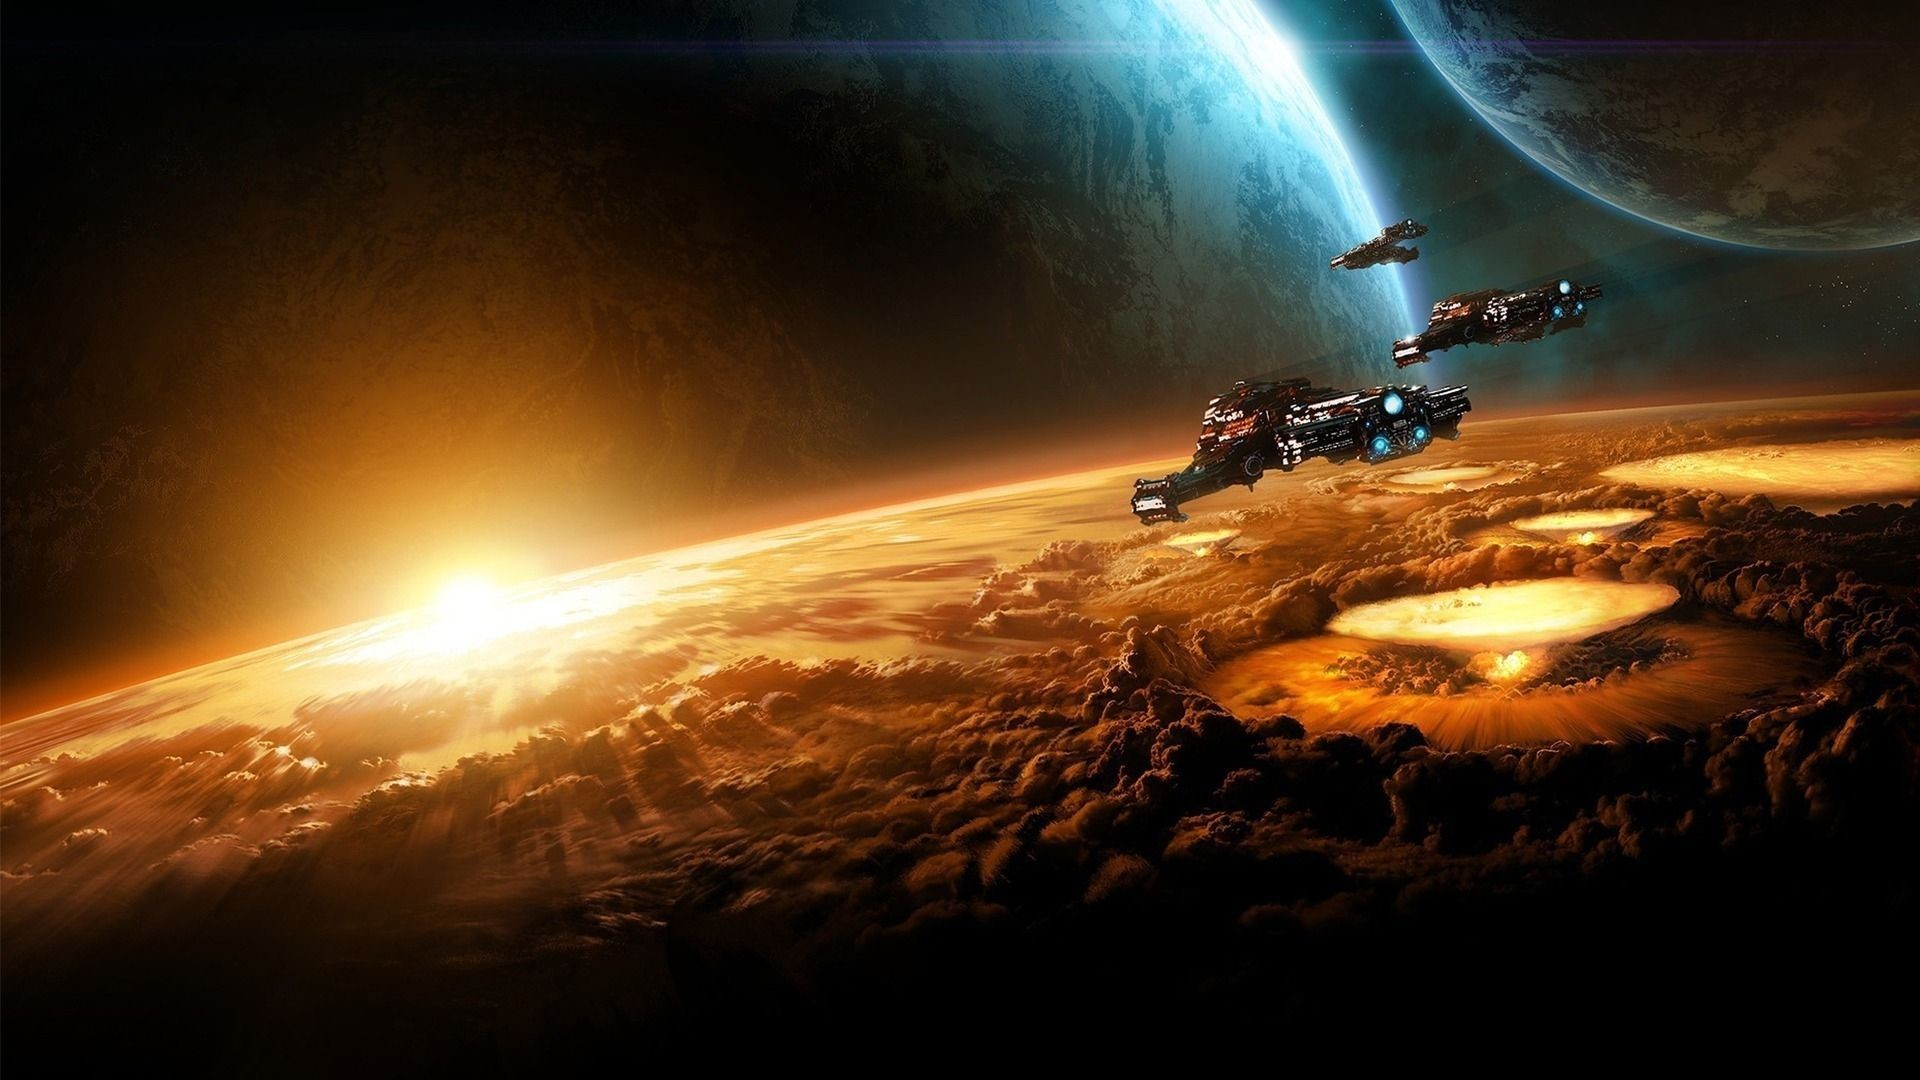 Spaceship Wallpaper Hd Posted By Samantha Anderson